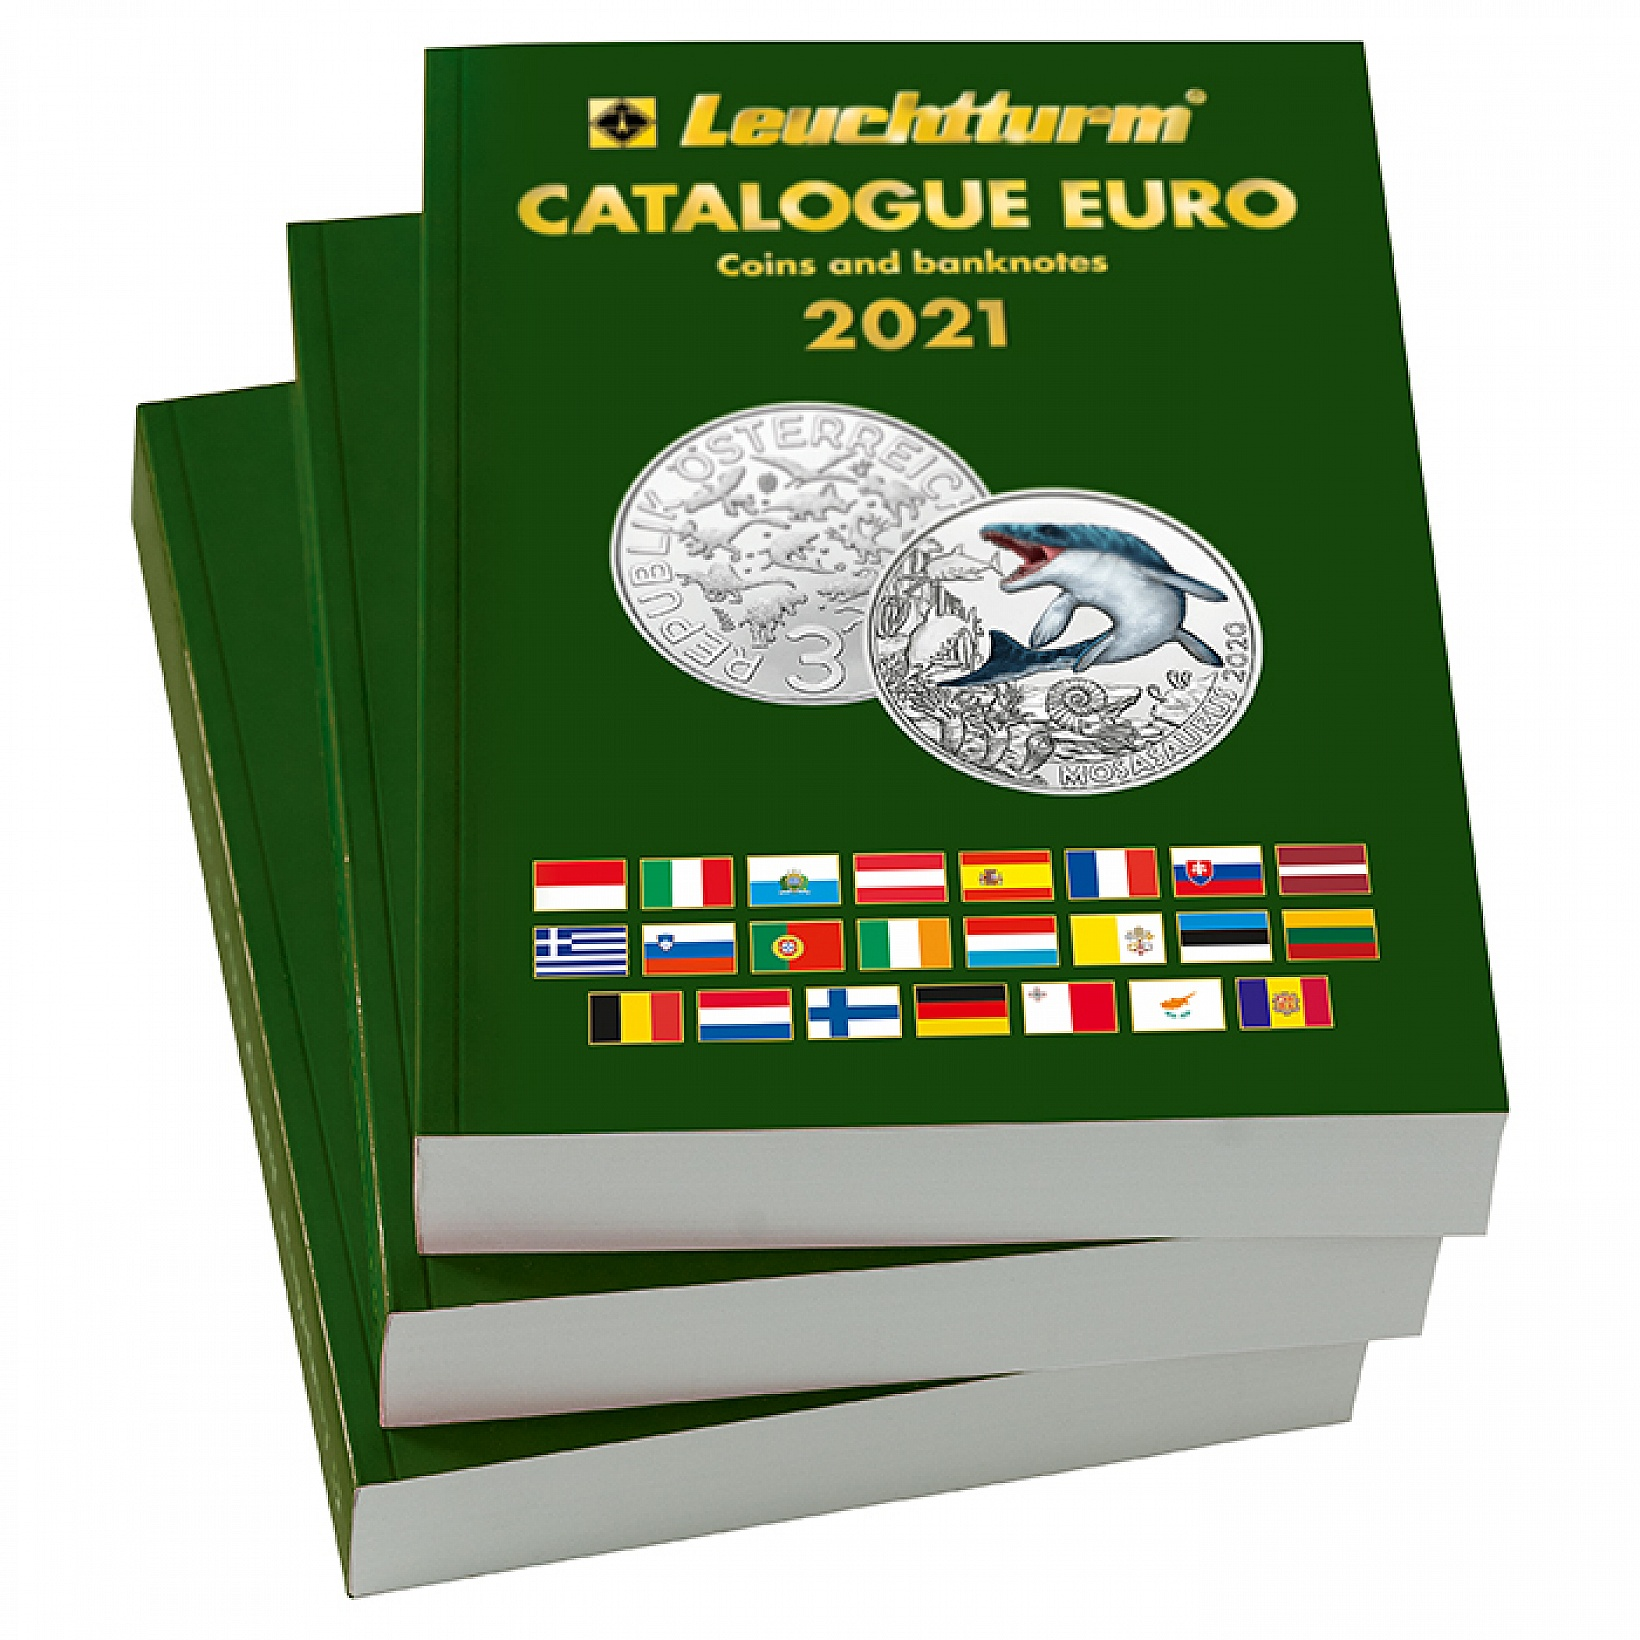 euro-catalogue-for-coins-and-banknotes-2021-english